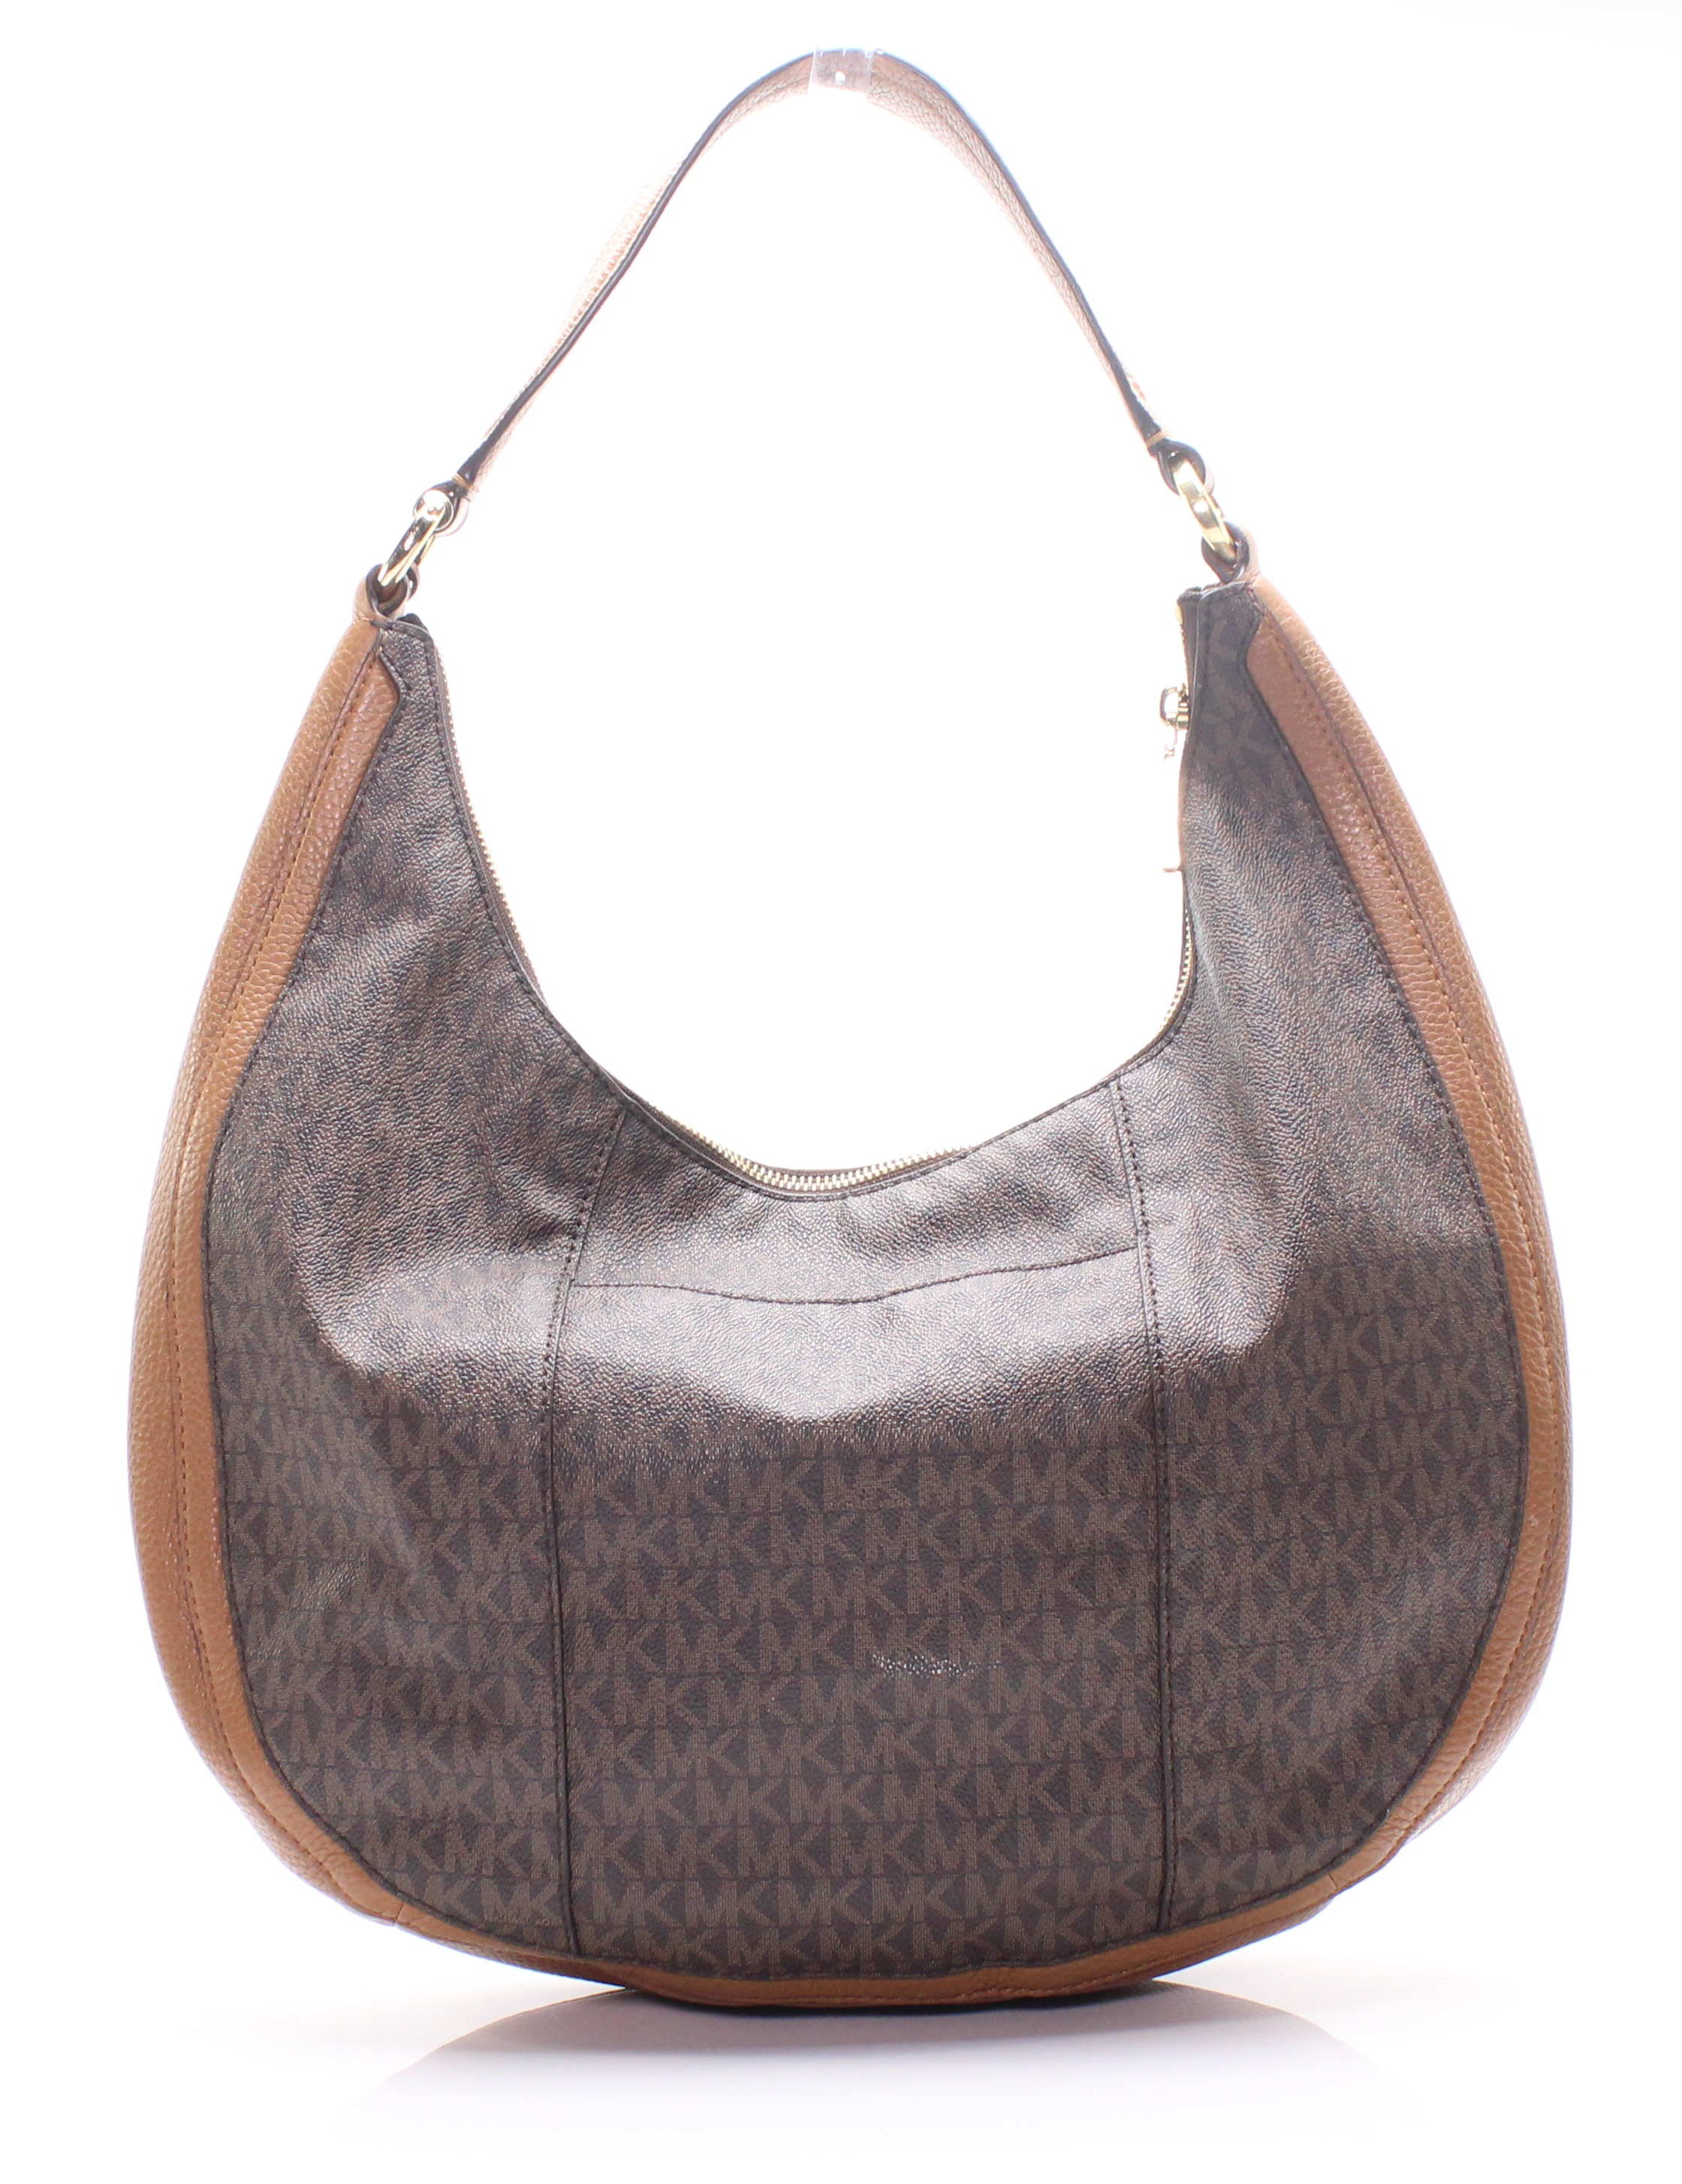 d34a2a484b5e Michael Kors Brown Gold Lydia Signature Large Hobo Shoulder Bag $298 ...